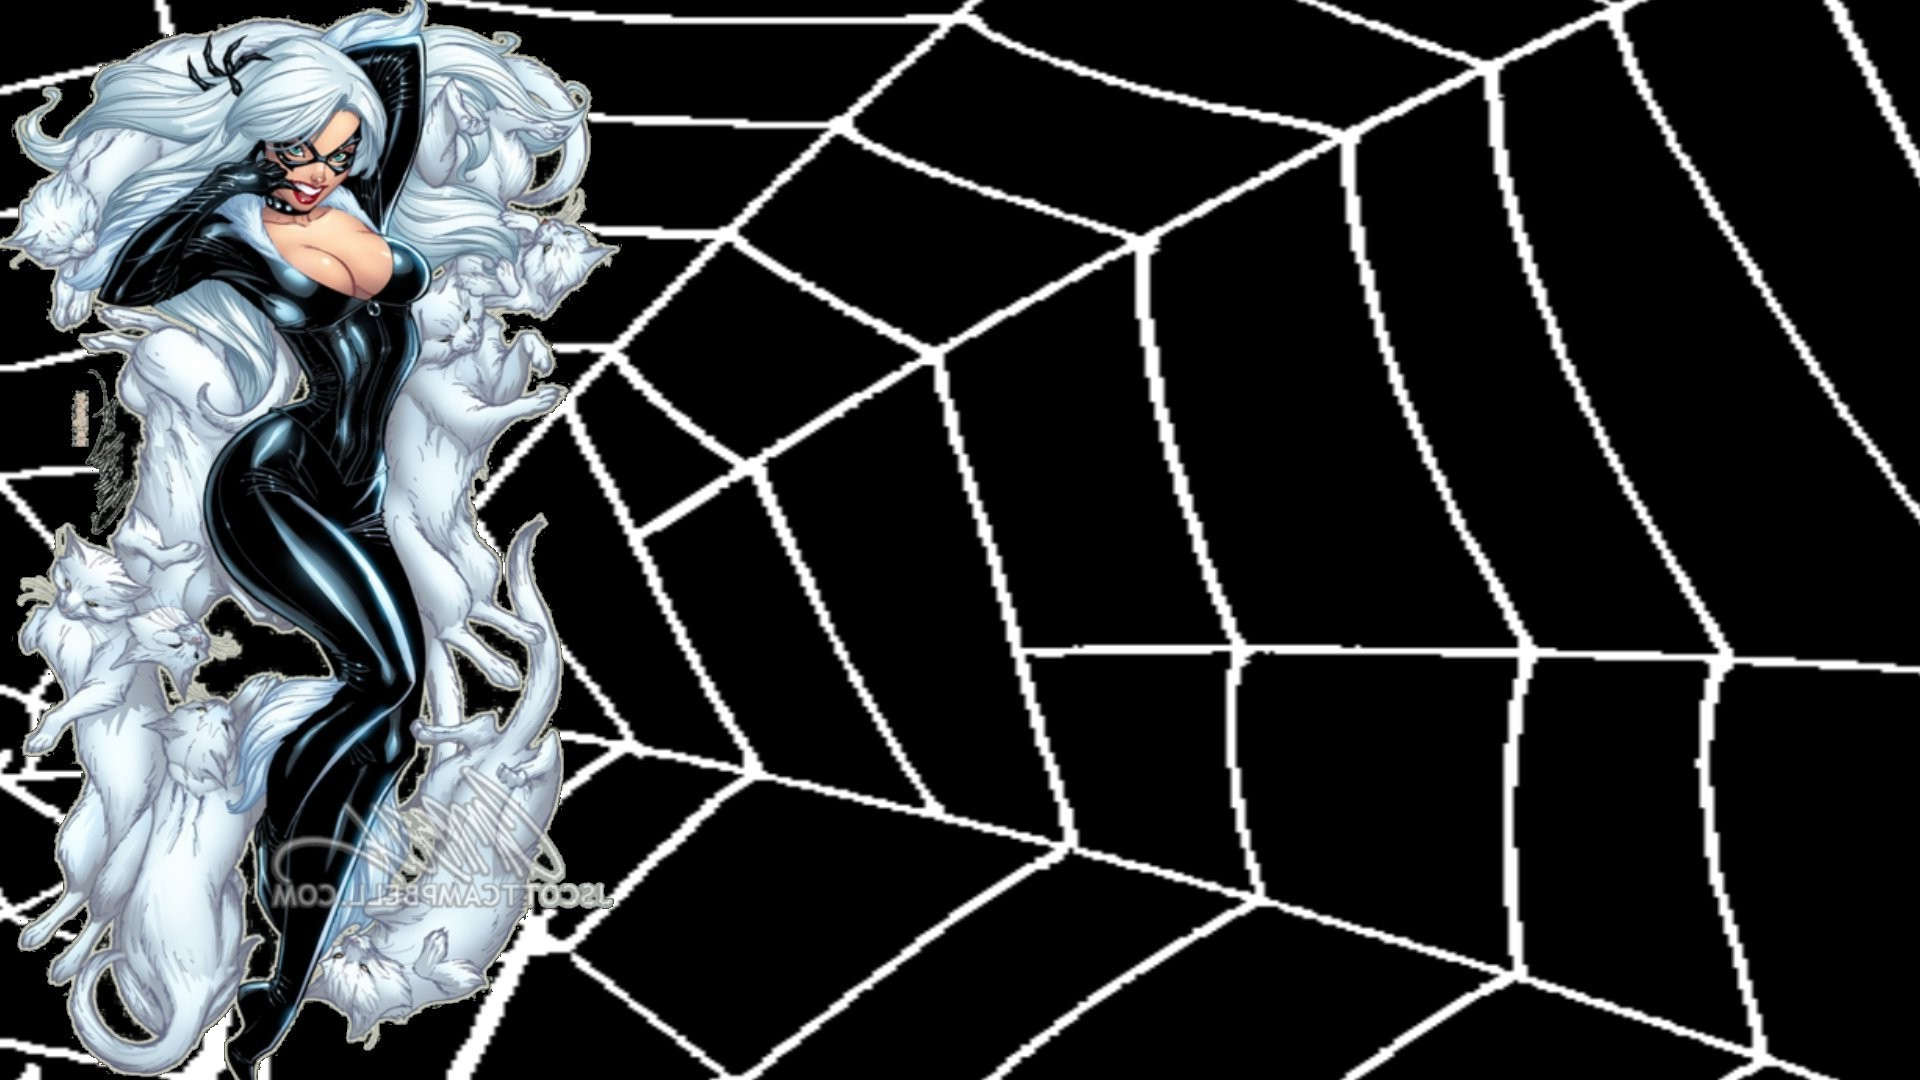 Res: 1920x1080, comics, Spider Man, Black Cat (character), Felicia Hardy Wallpapers HD /  Desktop and Mobile Backgrounds